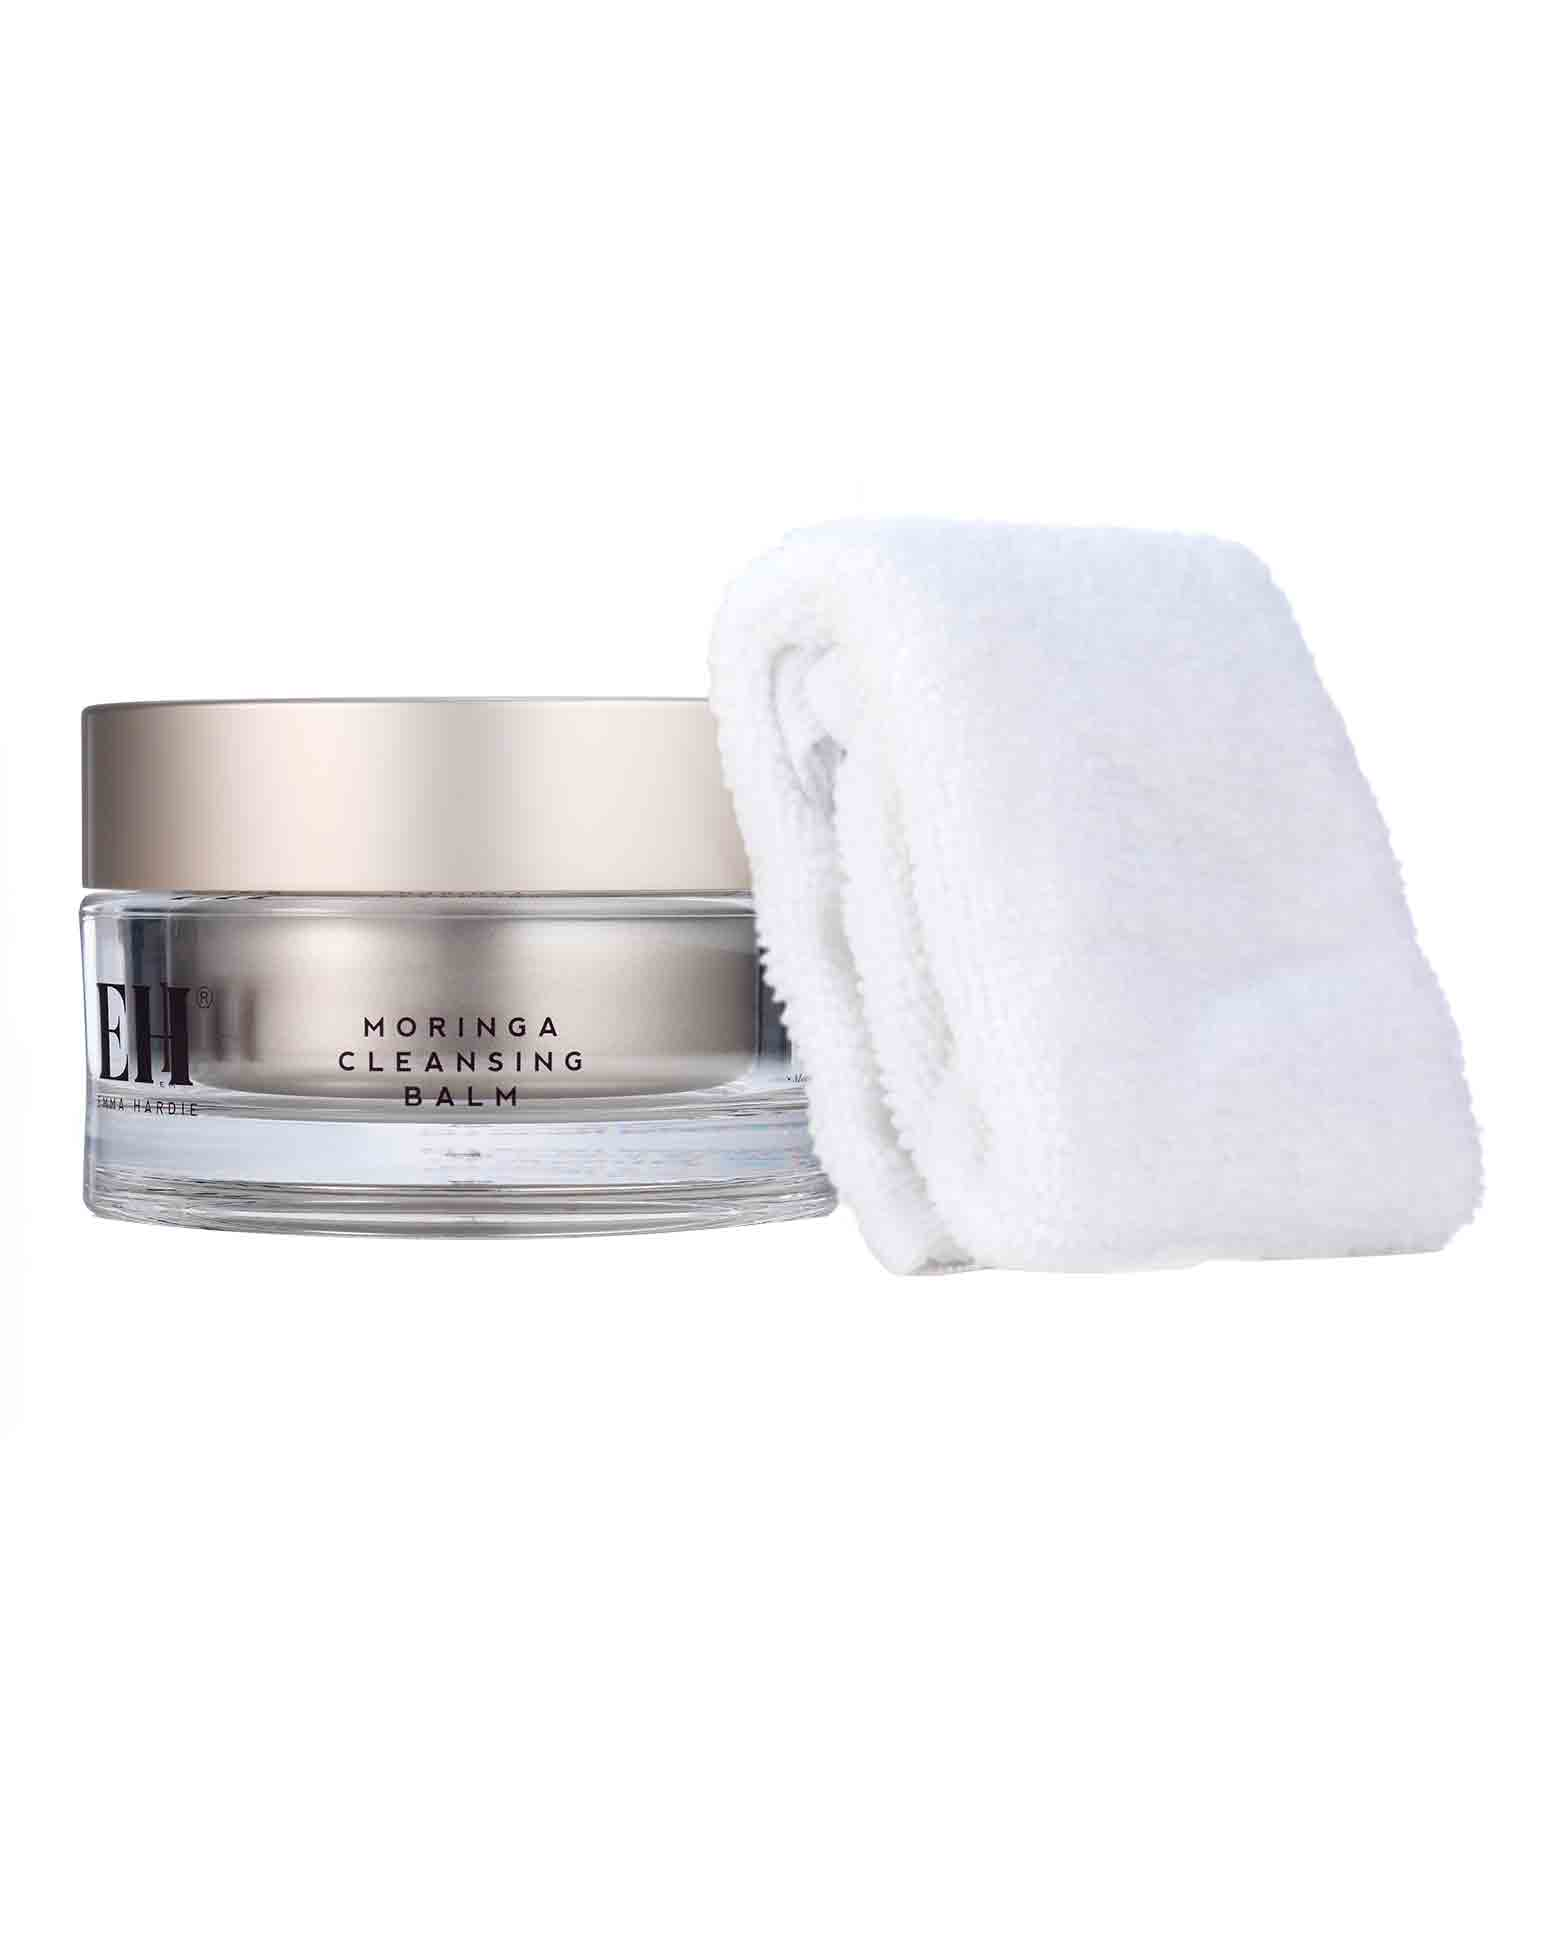 Moringa Cleansing Balm with Cleansing Cloth by Emma Hardie Skincare